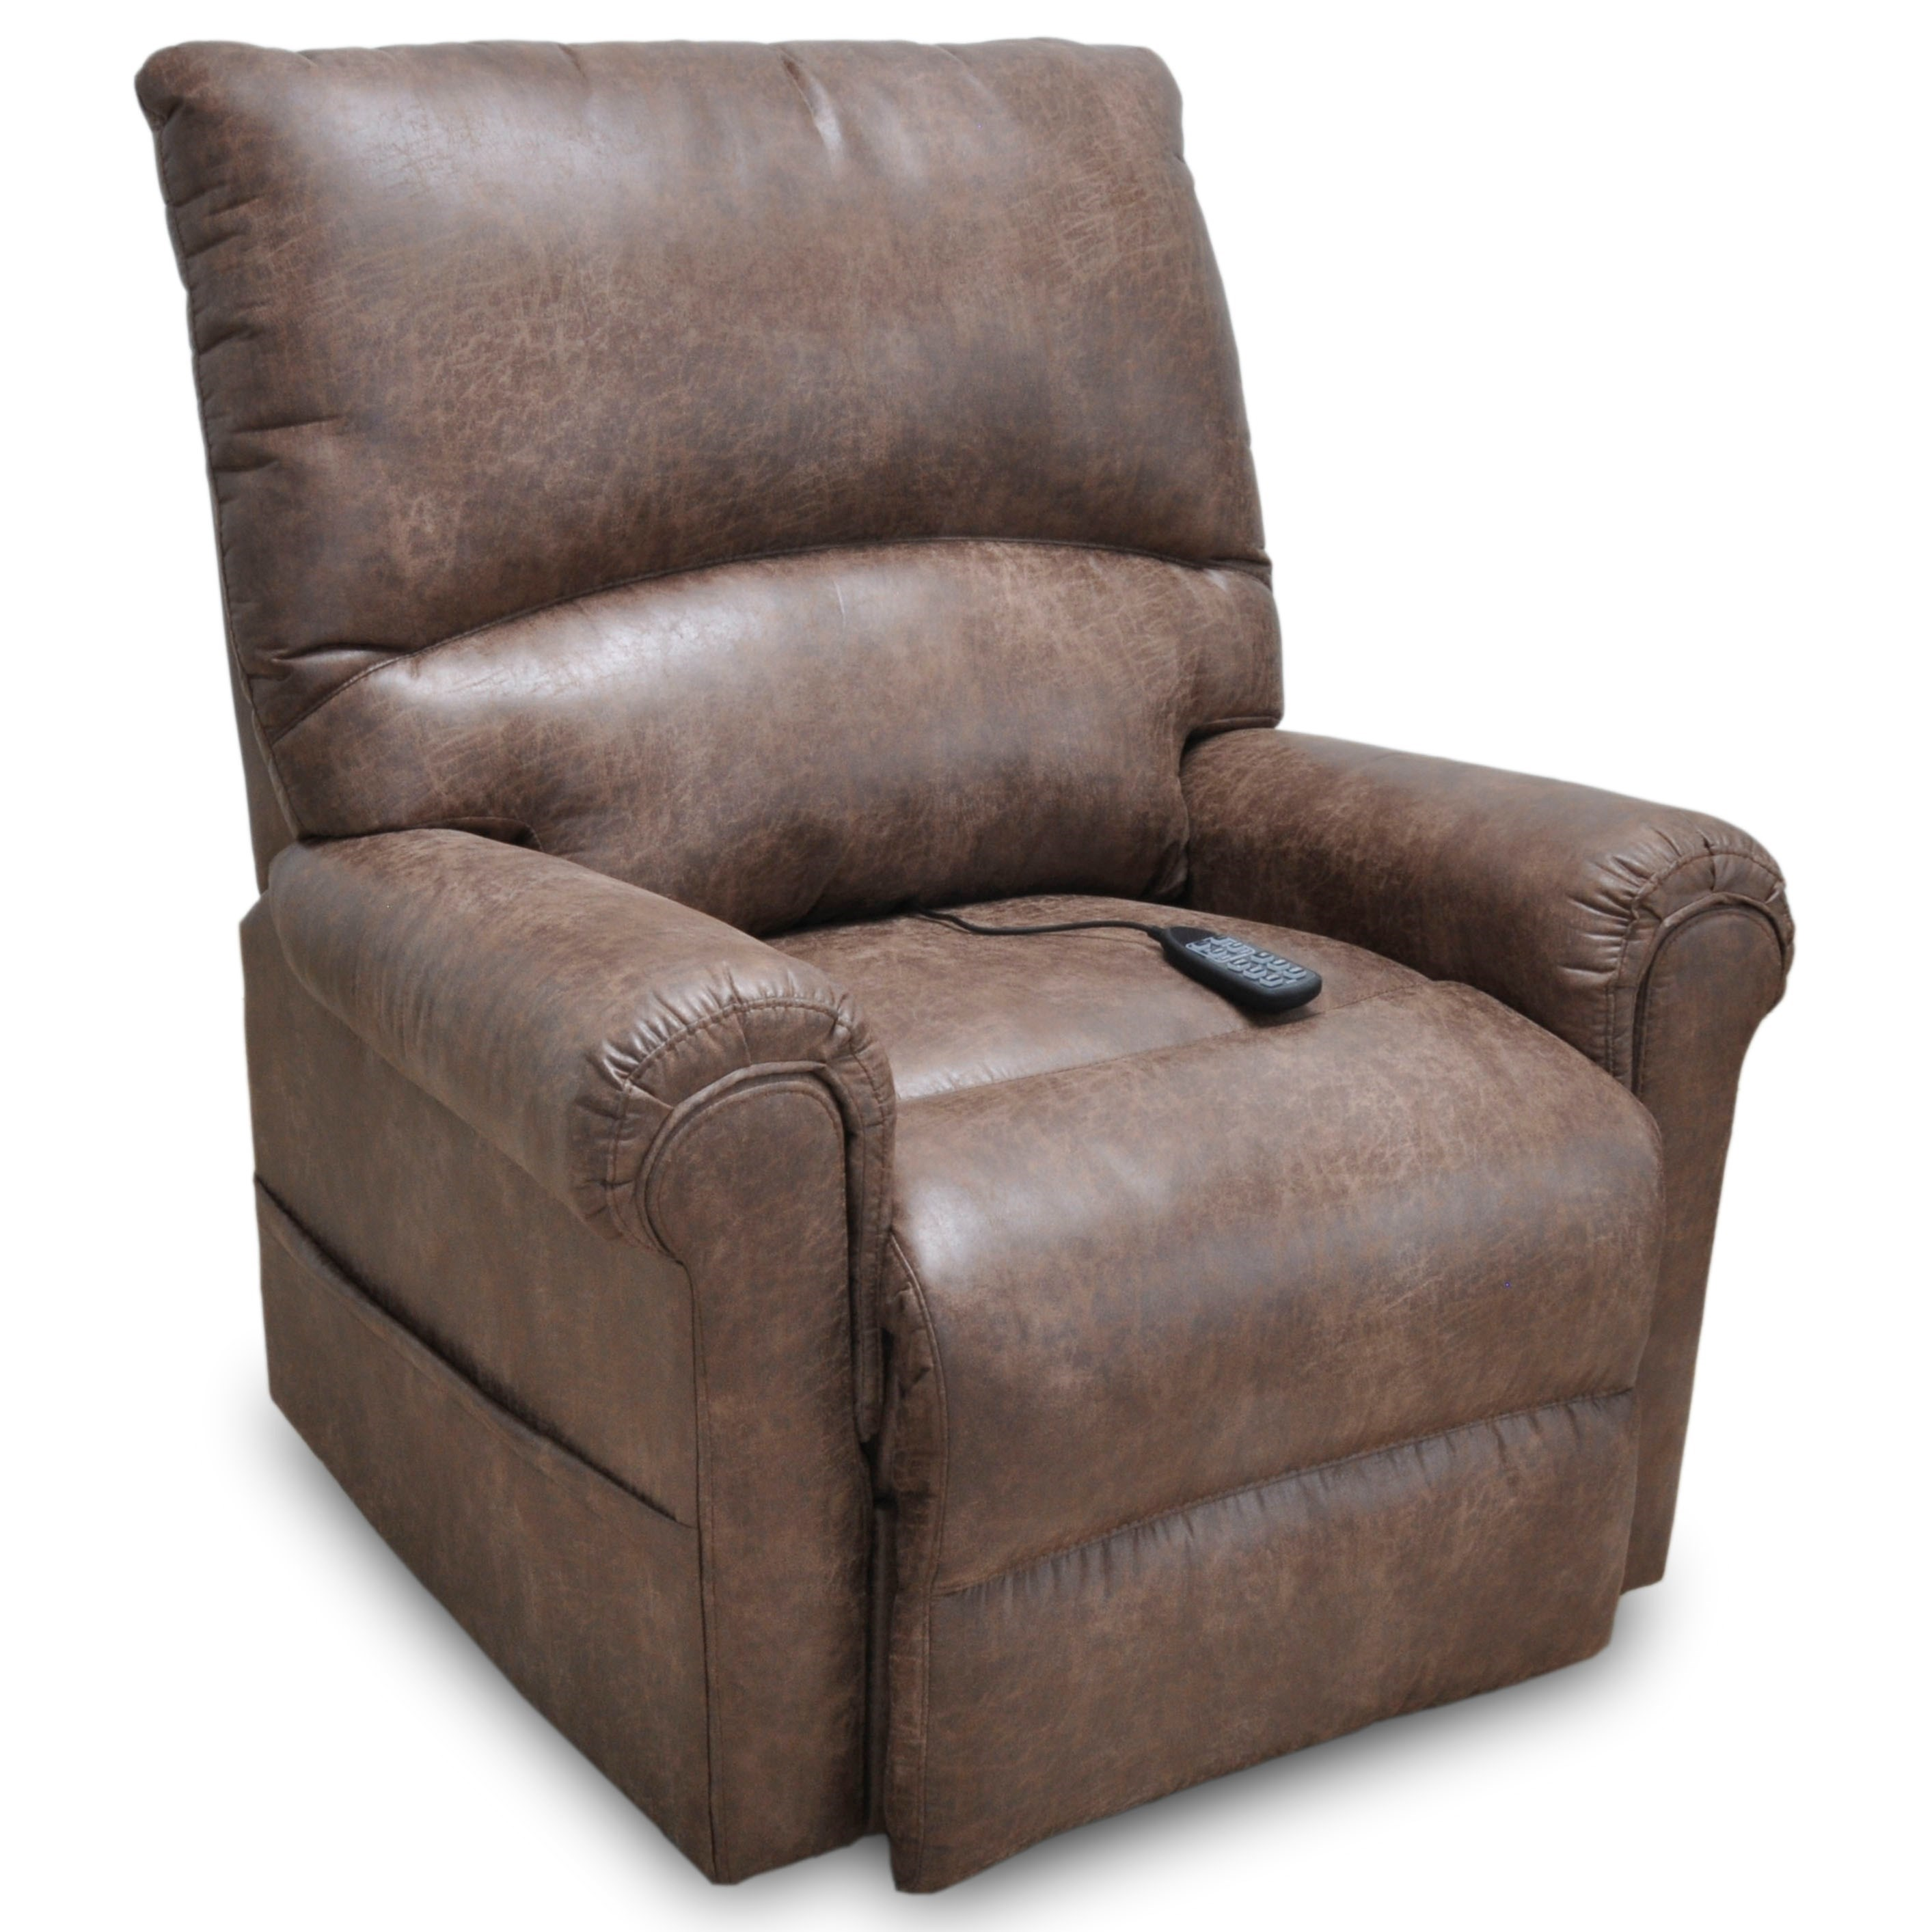 Independence Motor Bed Lift Chair  Franklin Recliners by